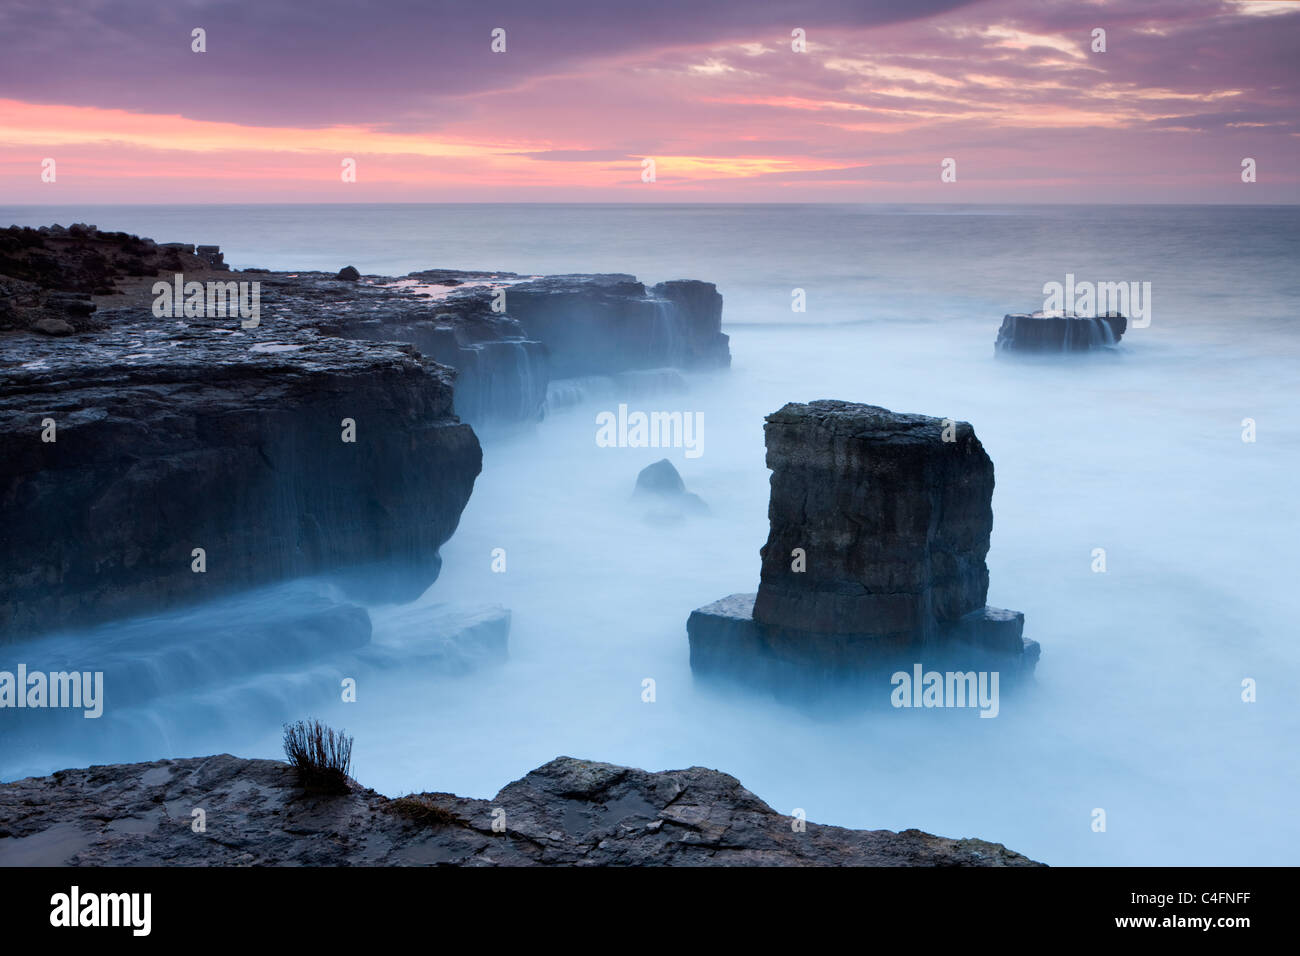 Beautiful sunrise over the rocky coast of Portland Bill on the Jurassic Coast, Dorset, England. Winter (February) Stock Photo